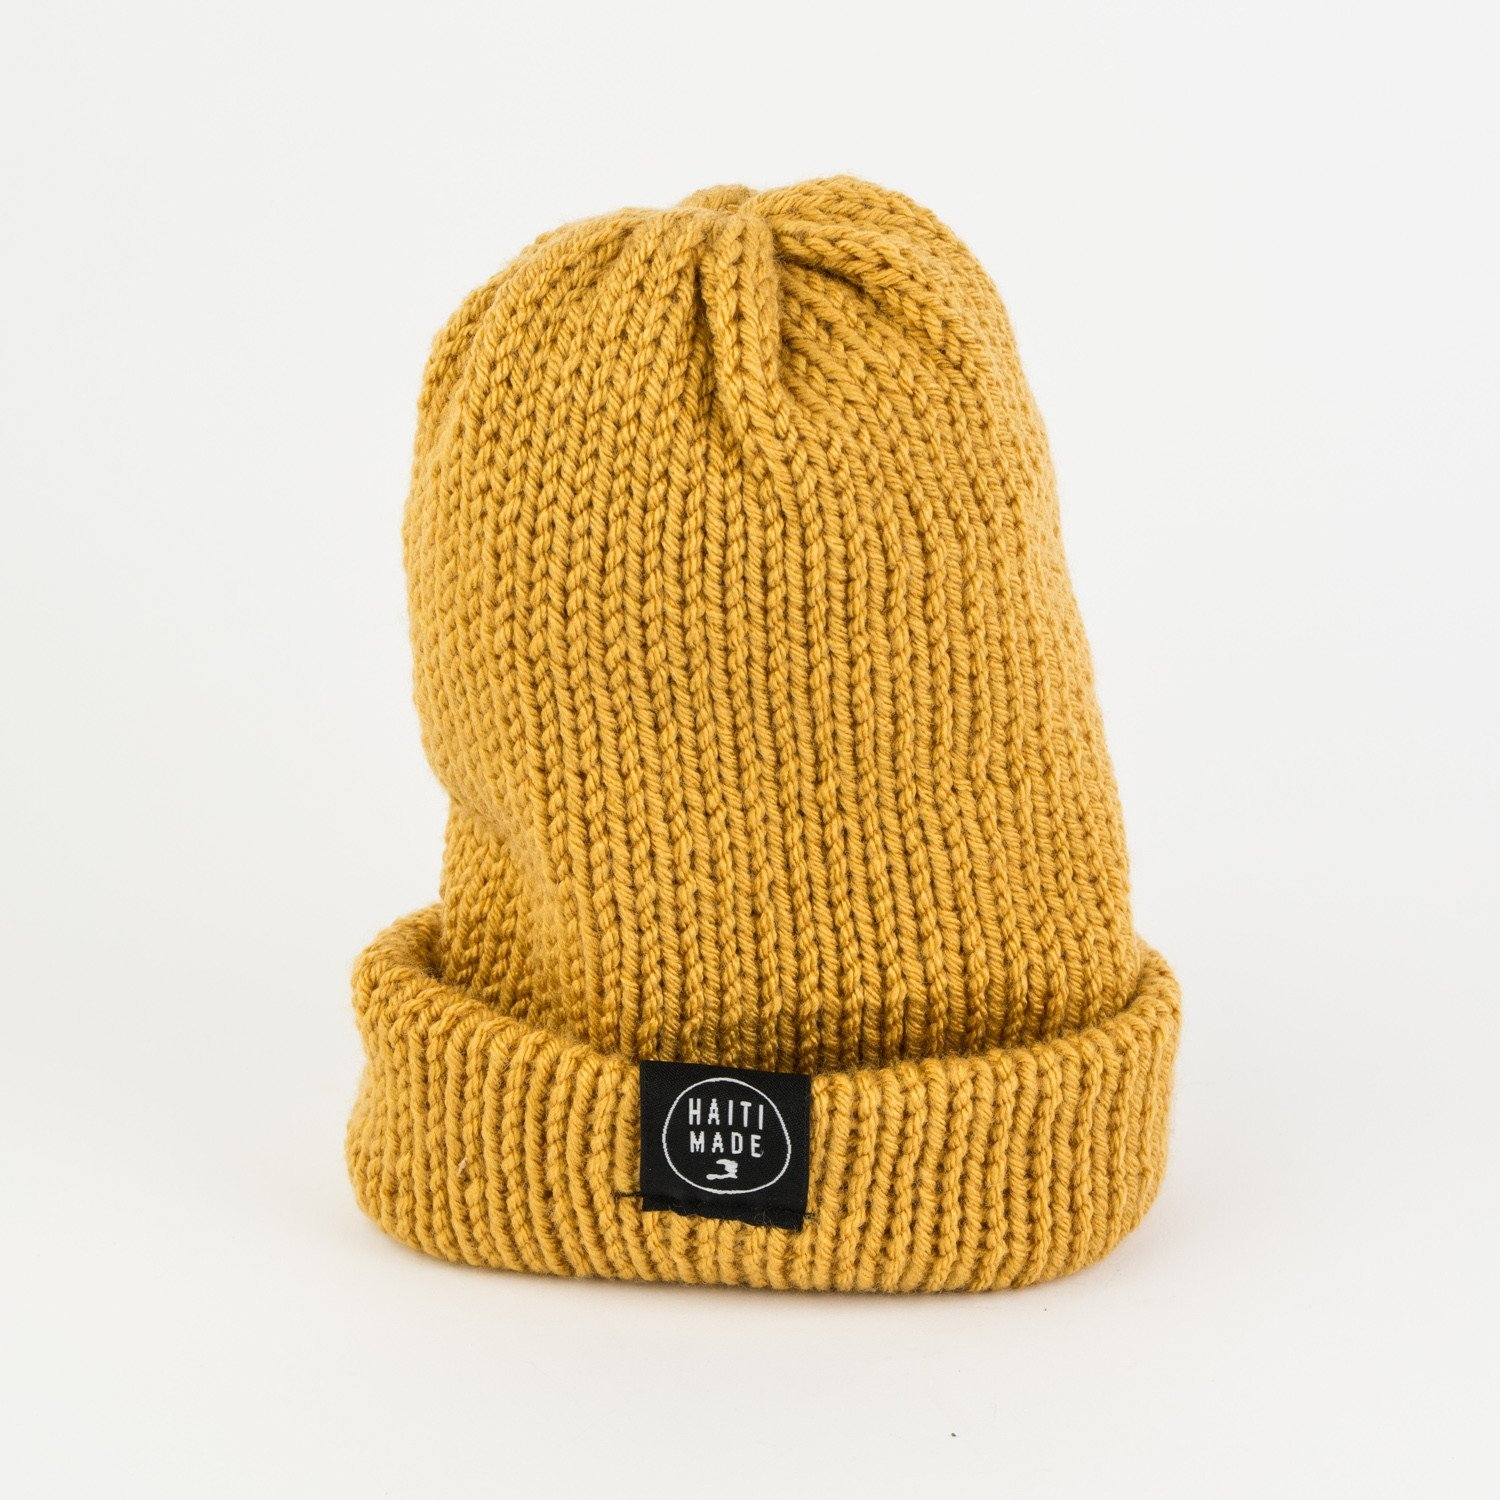 A Guide to Ethical Beanies — The Honest Consumer 679153f9b558